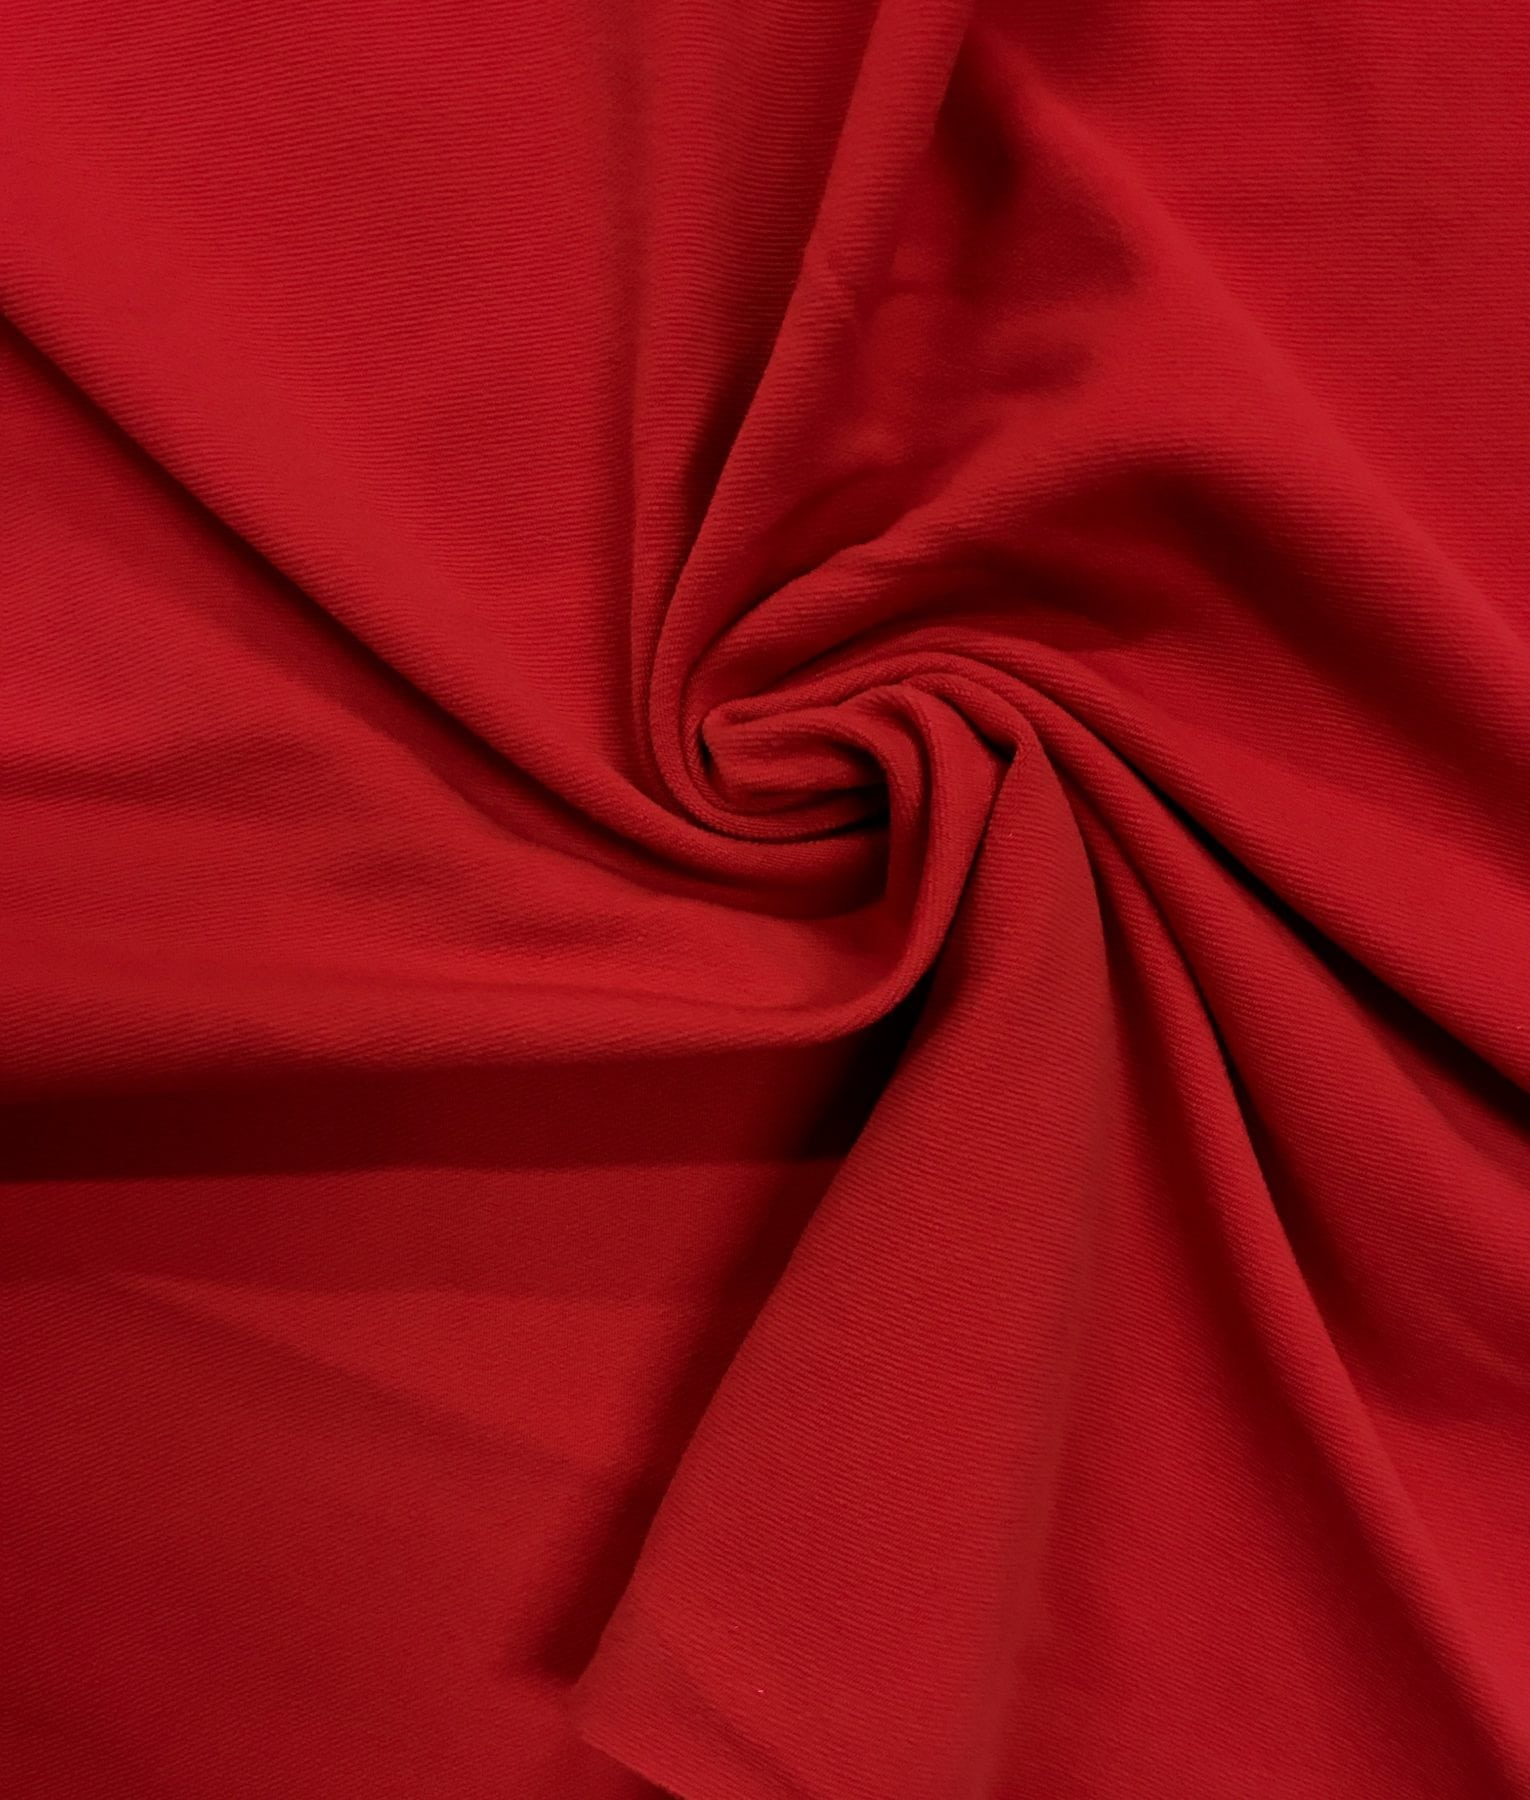 Red Moisture Wicking Supplex, Invista Supplex fabirc, moisture wicking activewear fabric, wicking supplex, moisture wicking supplex, supplex spandex